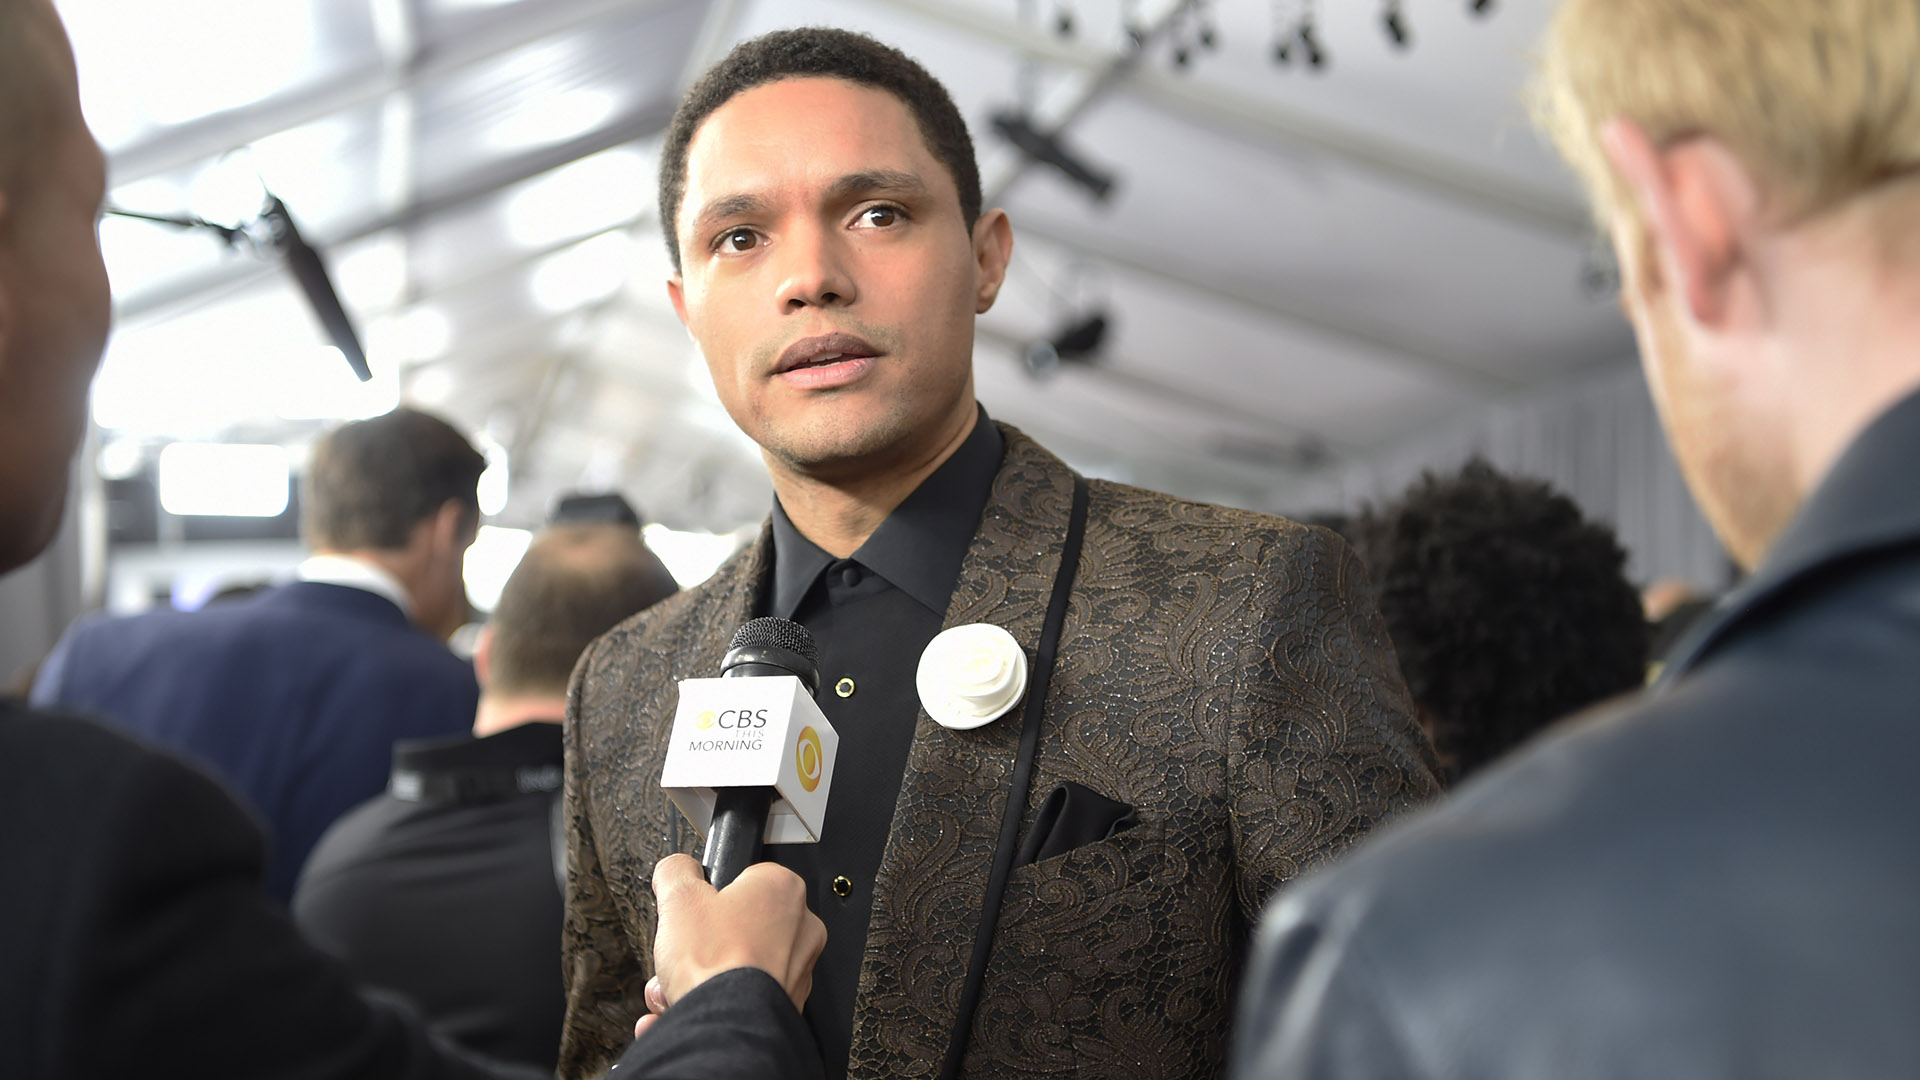 Trevor Noah gladly stops to chat with CBS This Morning on the 60th GRAMMY Awards red carpet.